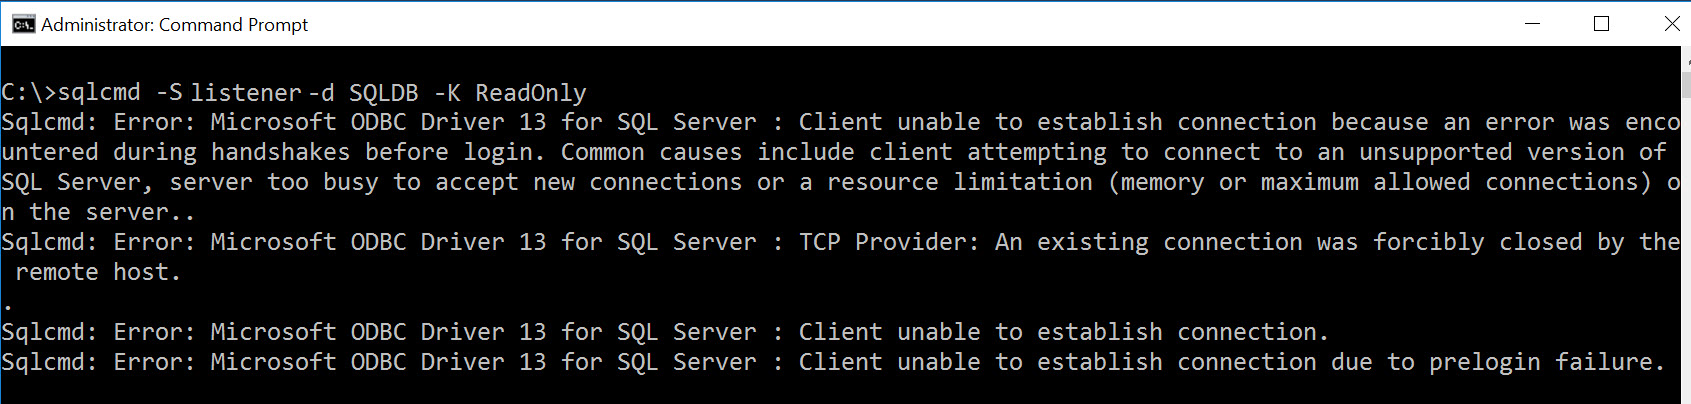 SQL SERVER - Read Only Routing Error: Client Unable to